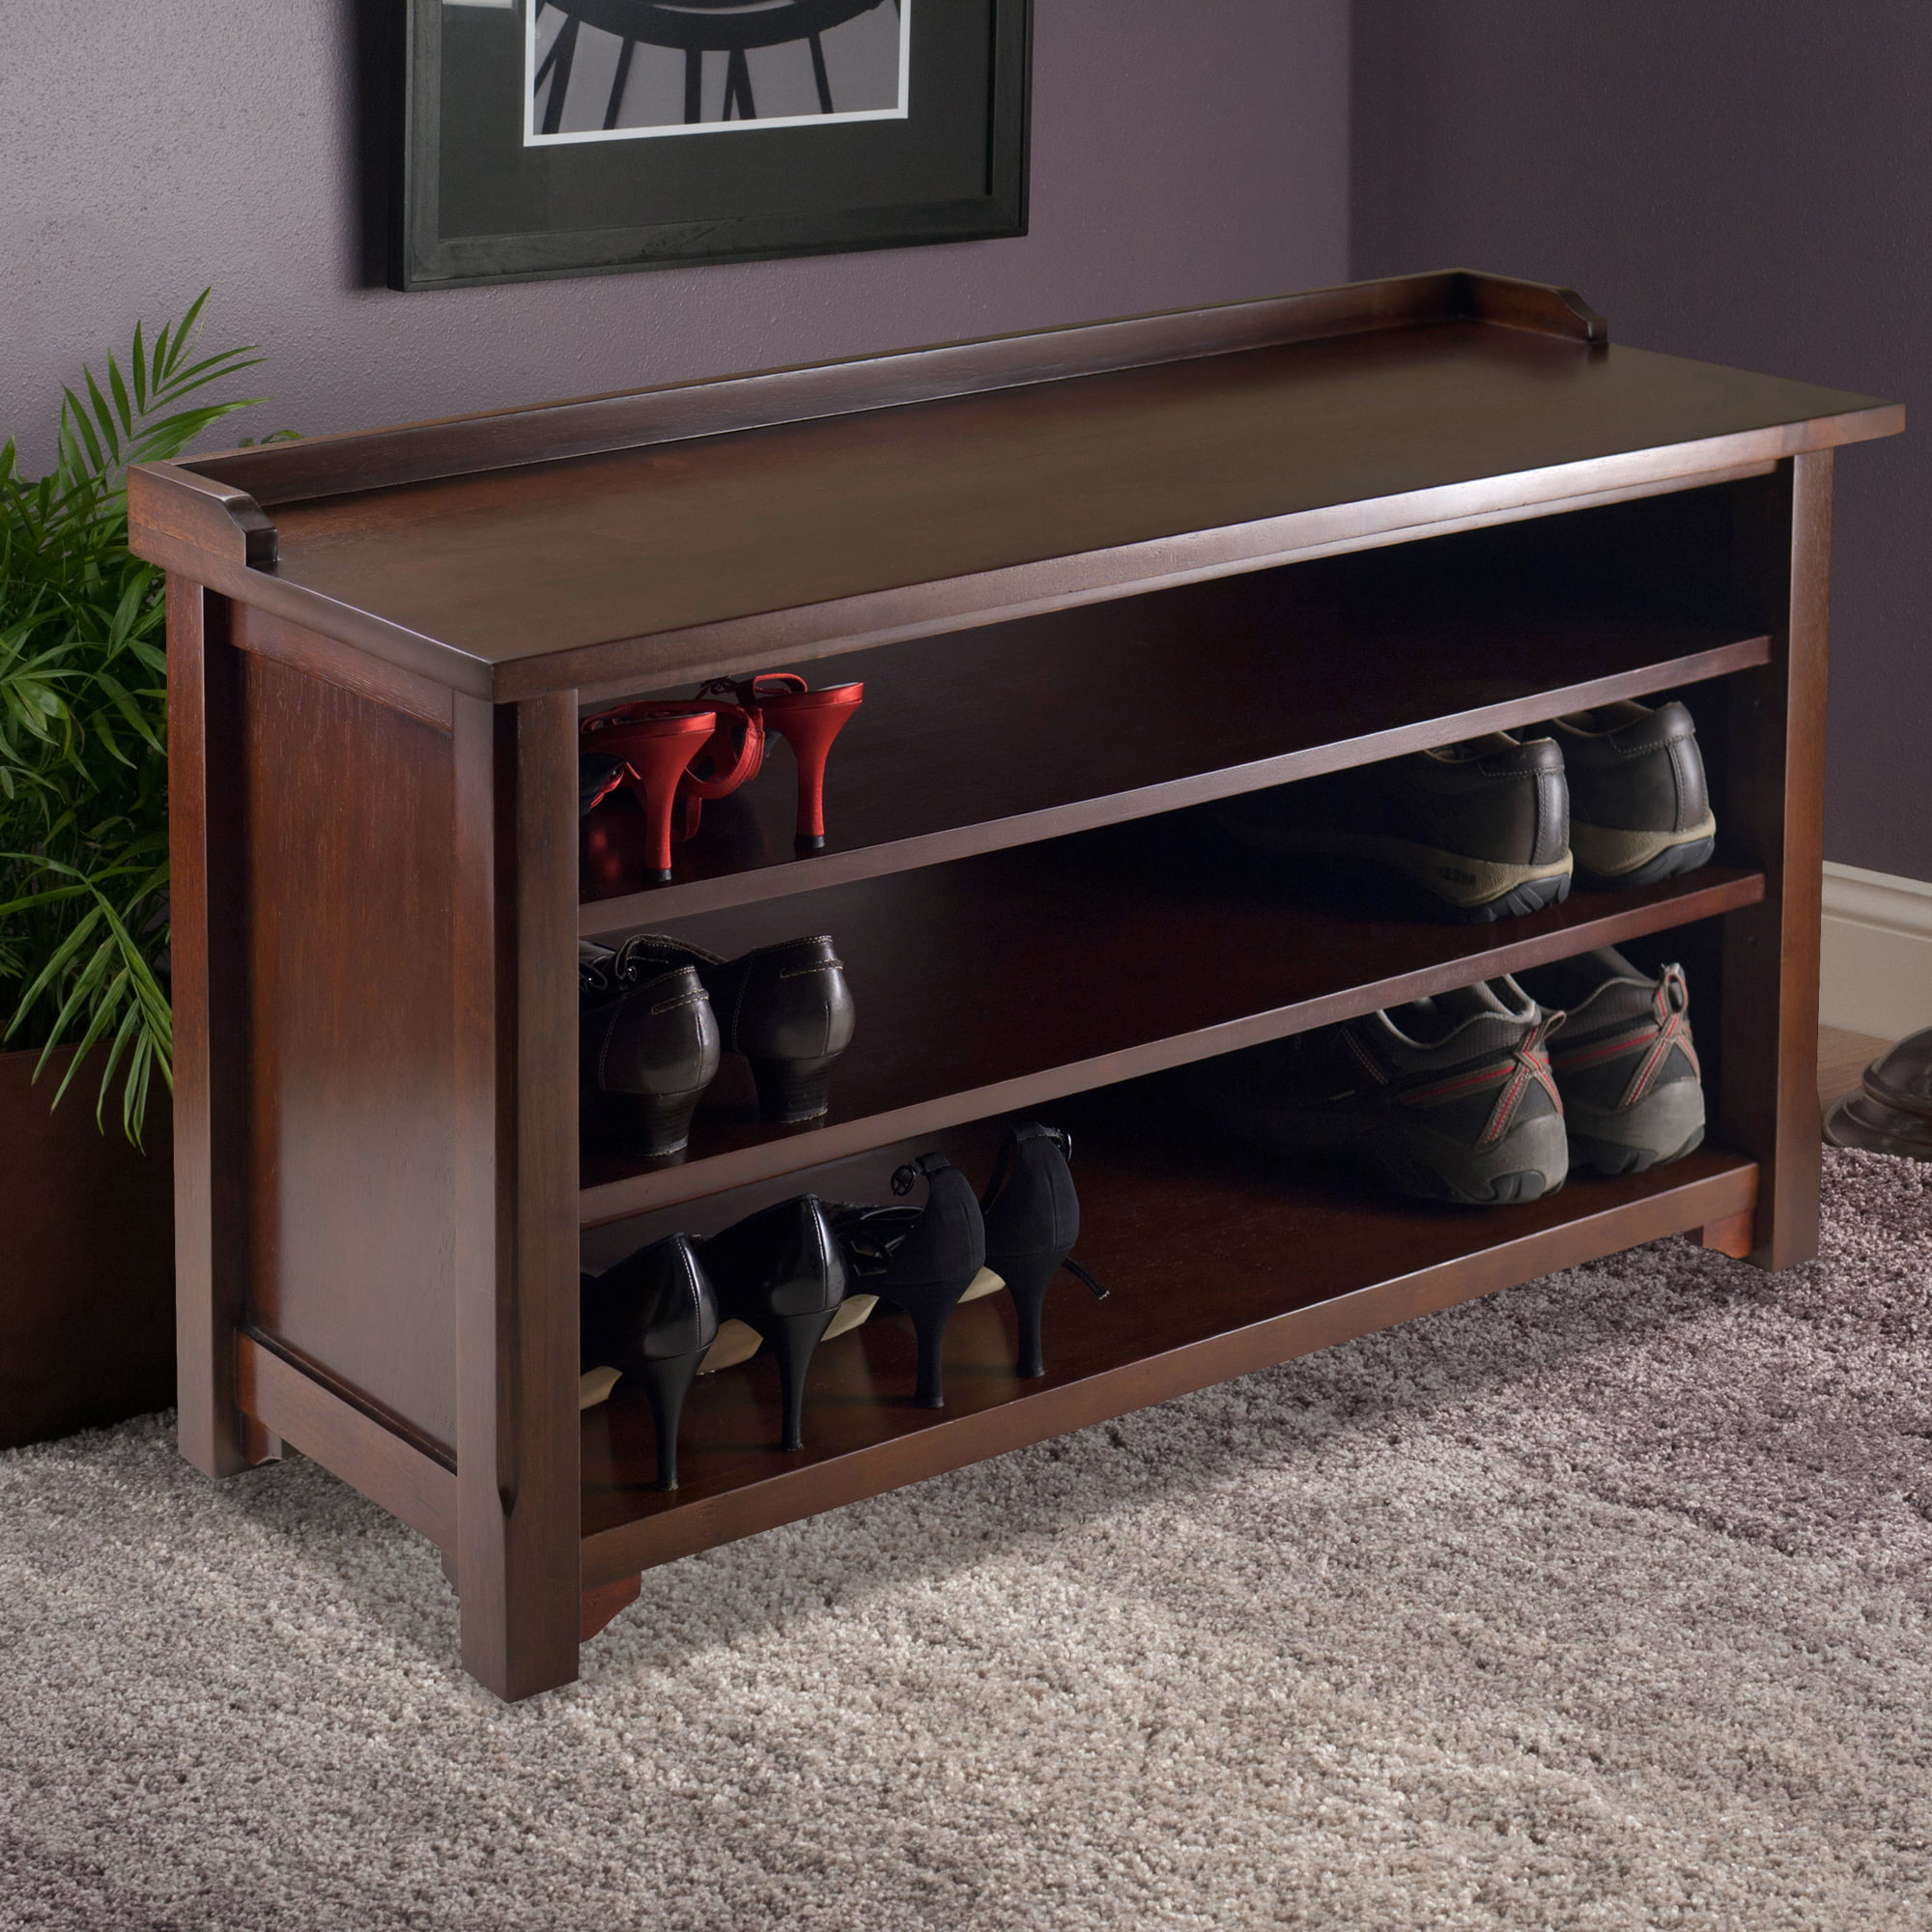 Tremendous Winsome Dayton Entryway Shoe Storage Bench Walnut Gmtry Best Dining Table And Chair Ideas Images Gmtryco